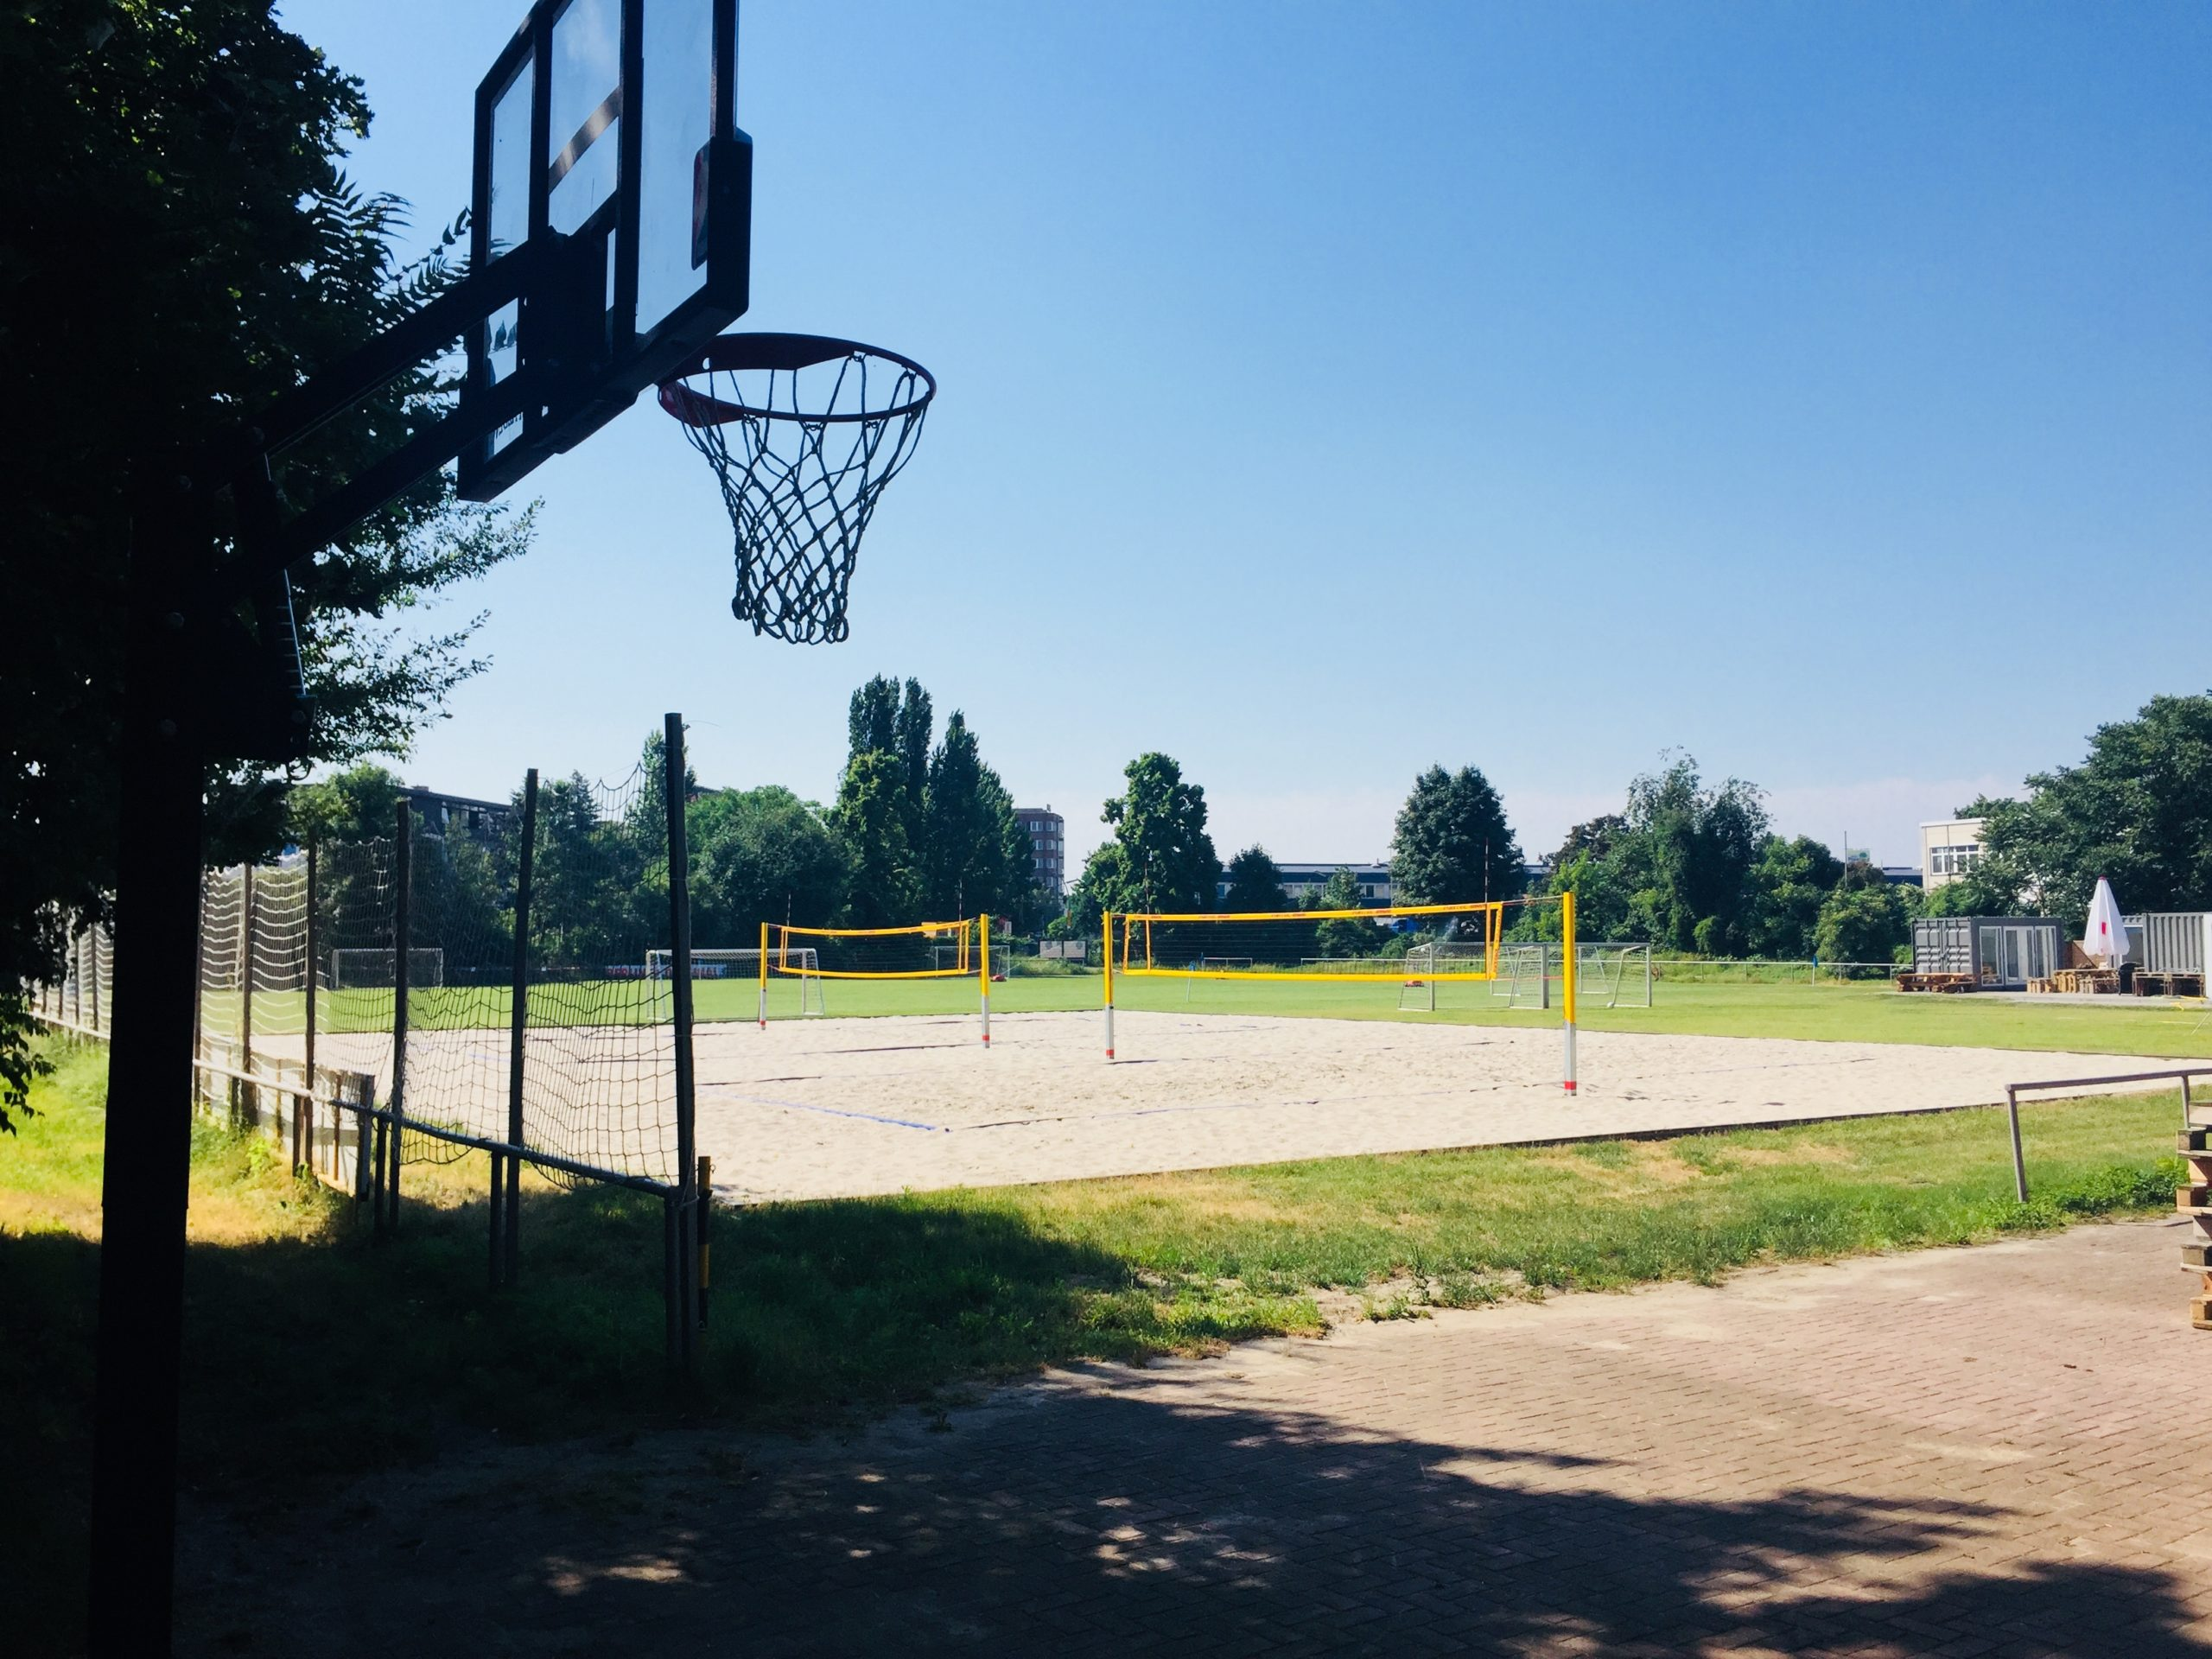 open air location berlin basketball korb im schatten mit blauem Himmel